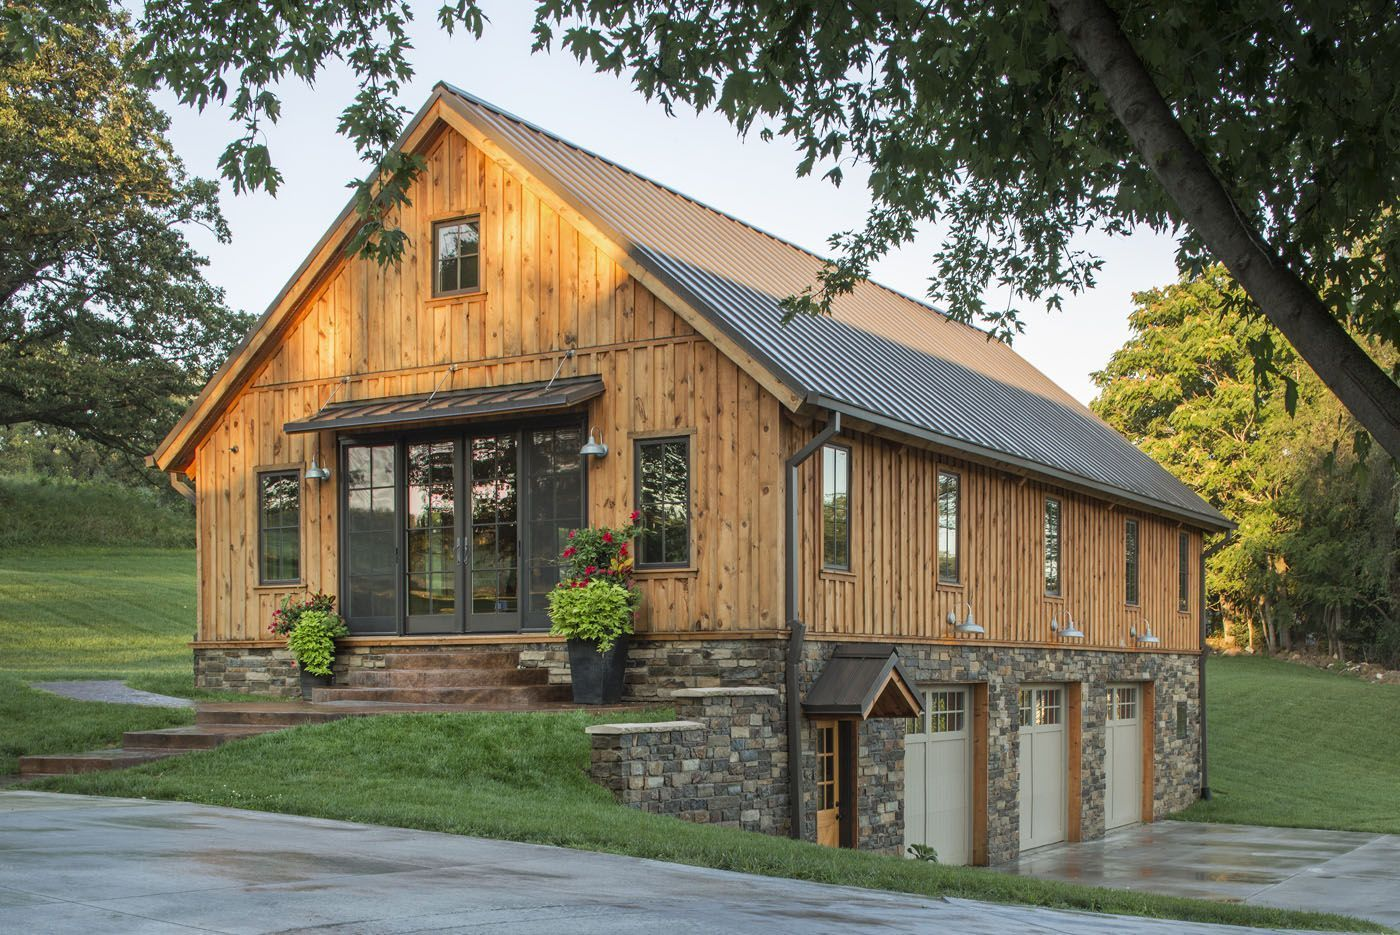 Gorgeous Wood Barn Home With 3 Car Garage . Love